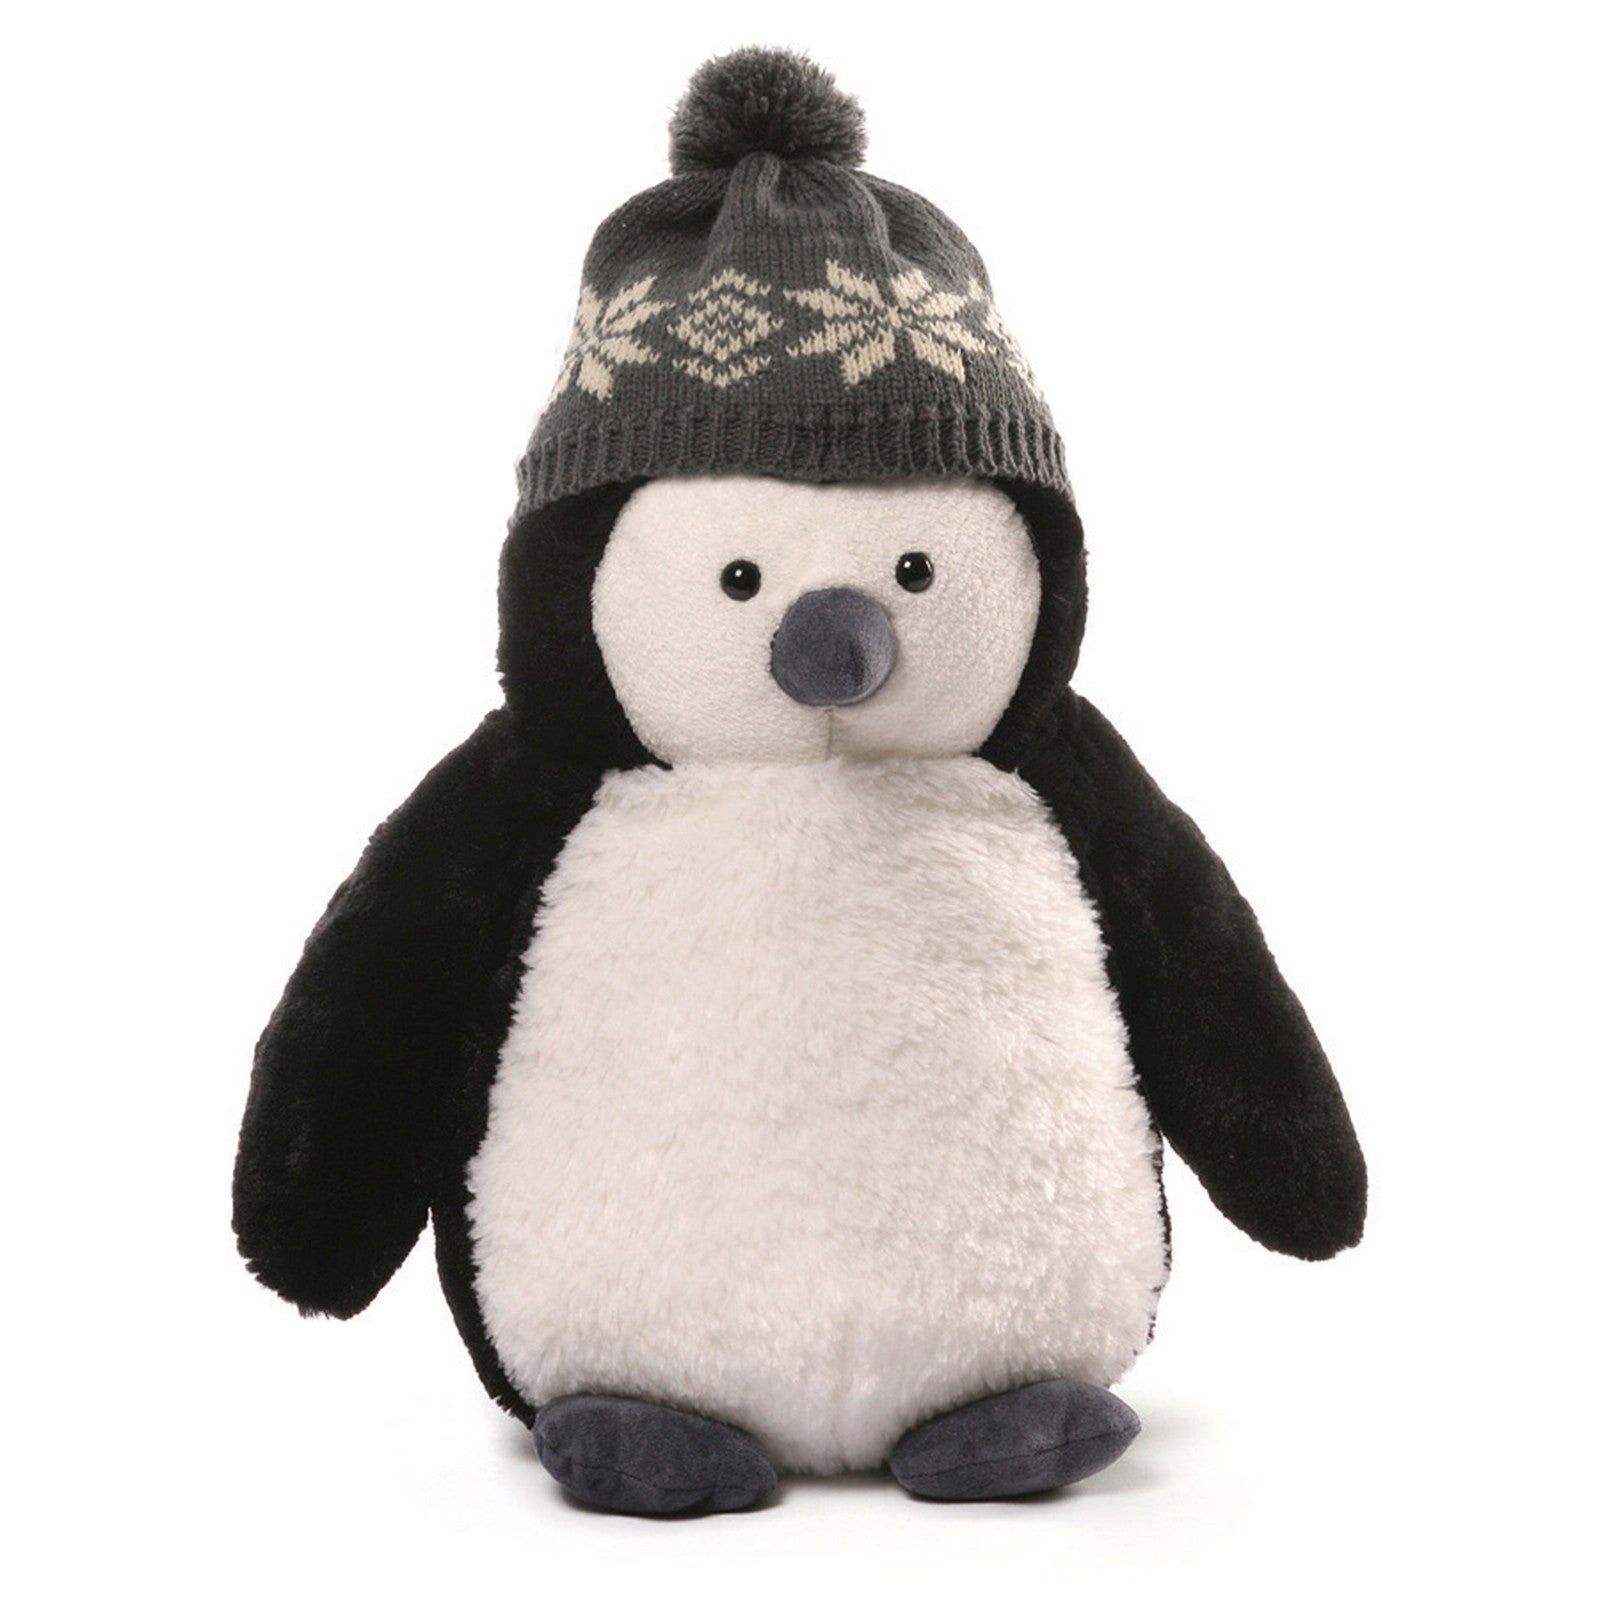 Gund - Puffers Penguin - in 2 sizes